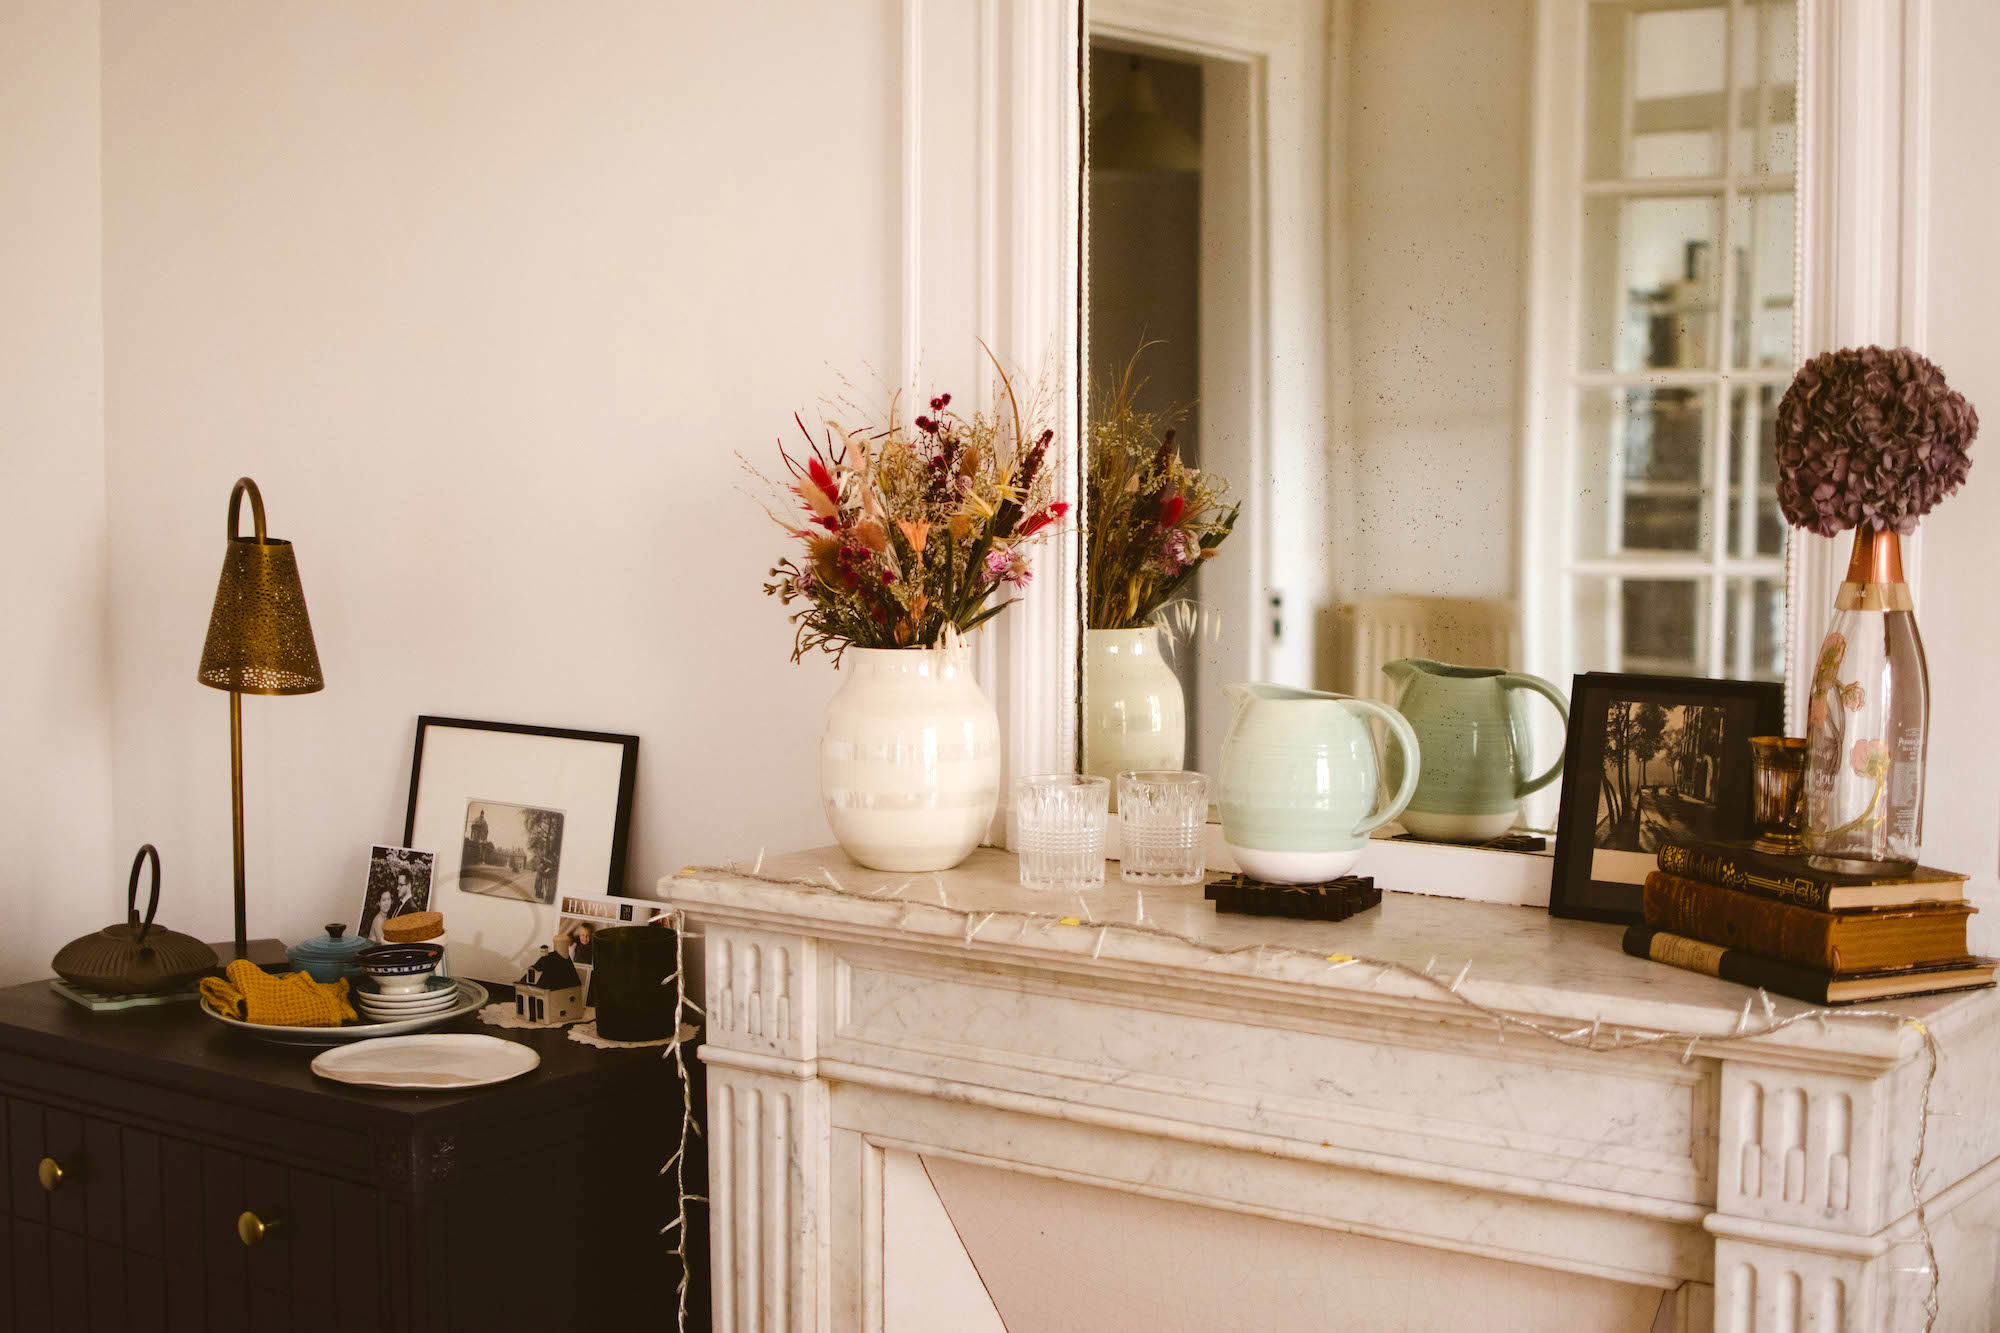 A pretty apartment corner with dried flowers, photographs, books, and a mirror in Lindsey Tramuta's home in Paris' 11th arrondissement.